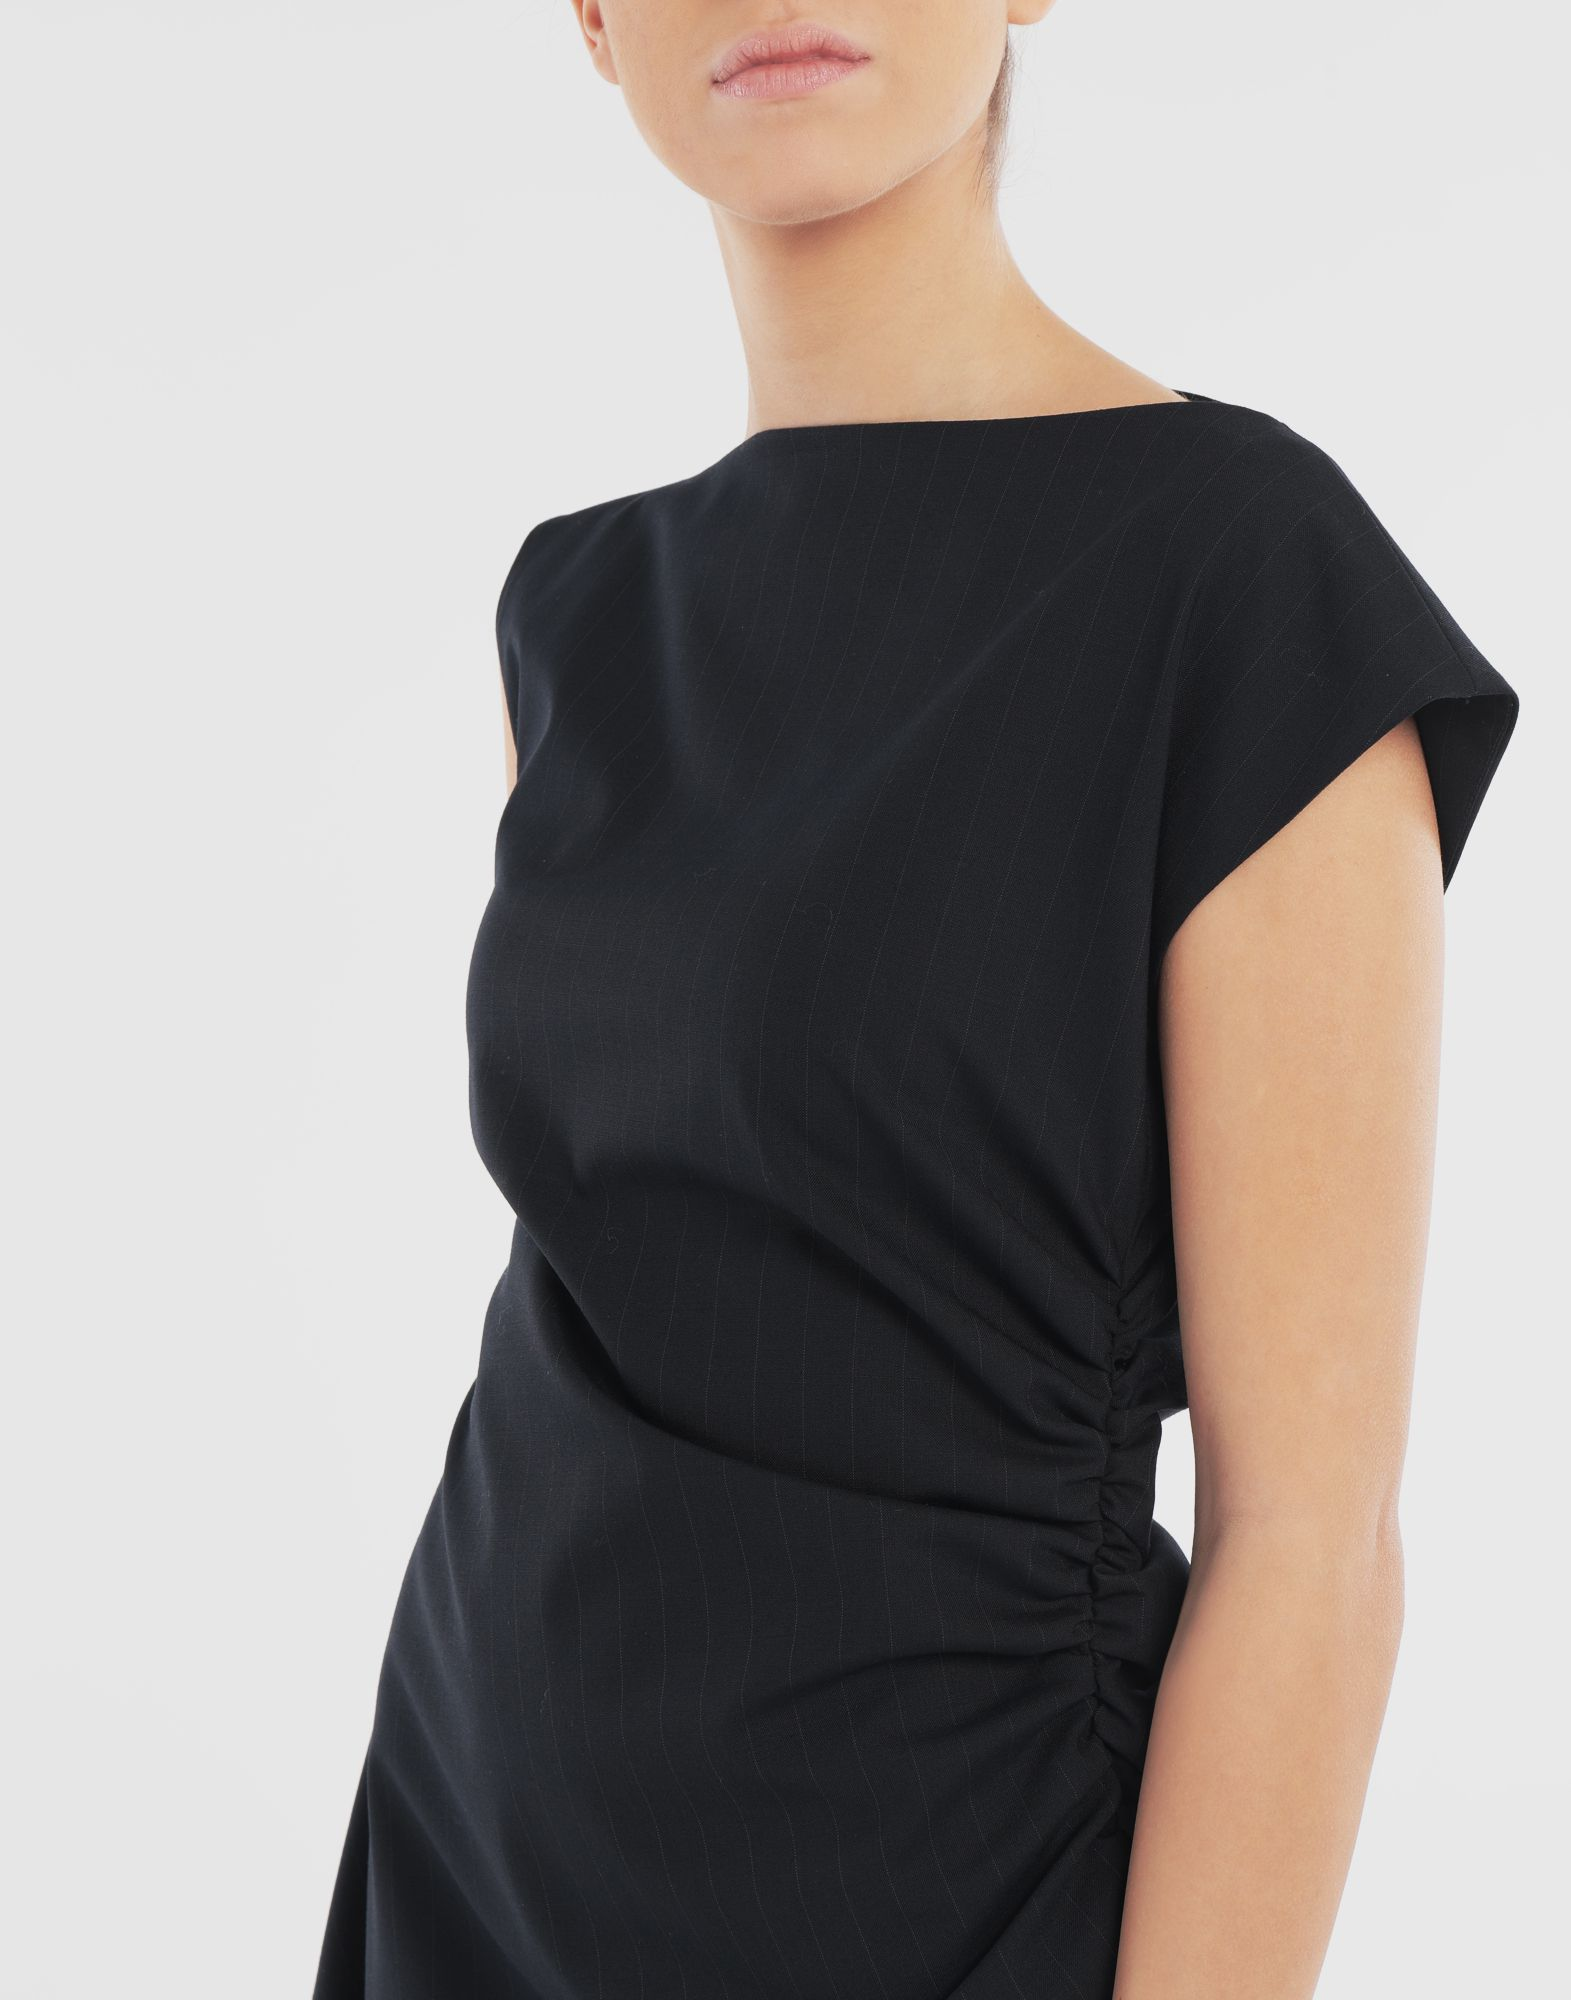 MM6 MAISON MARGIELA Asymmetric dress Dress Woman a